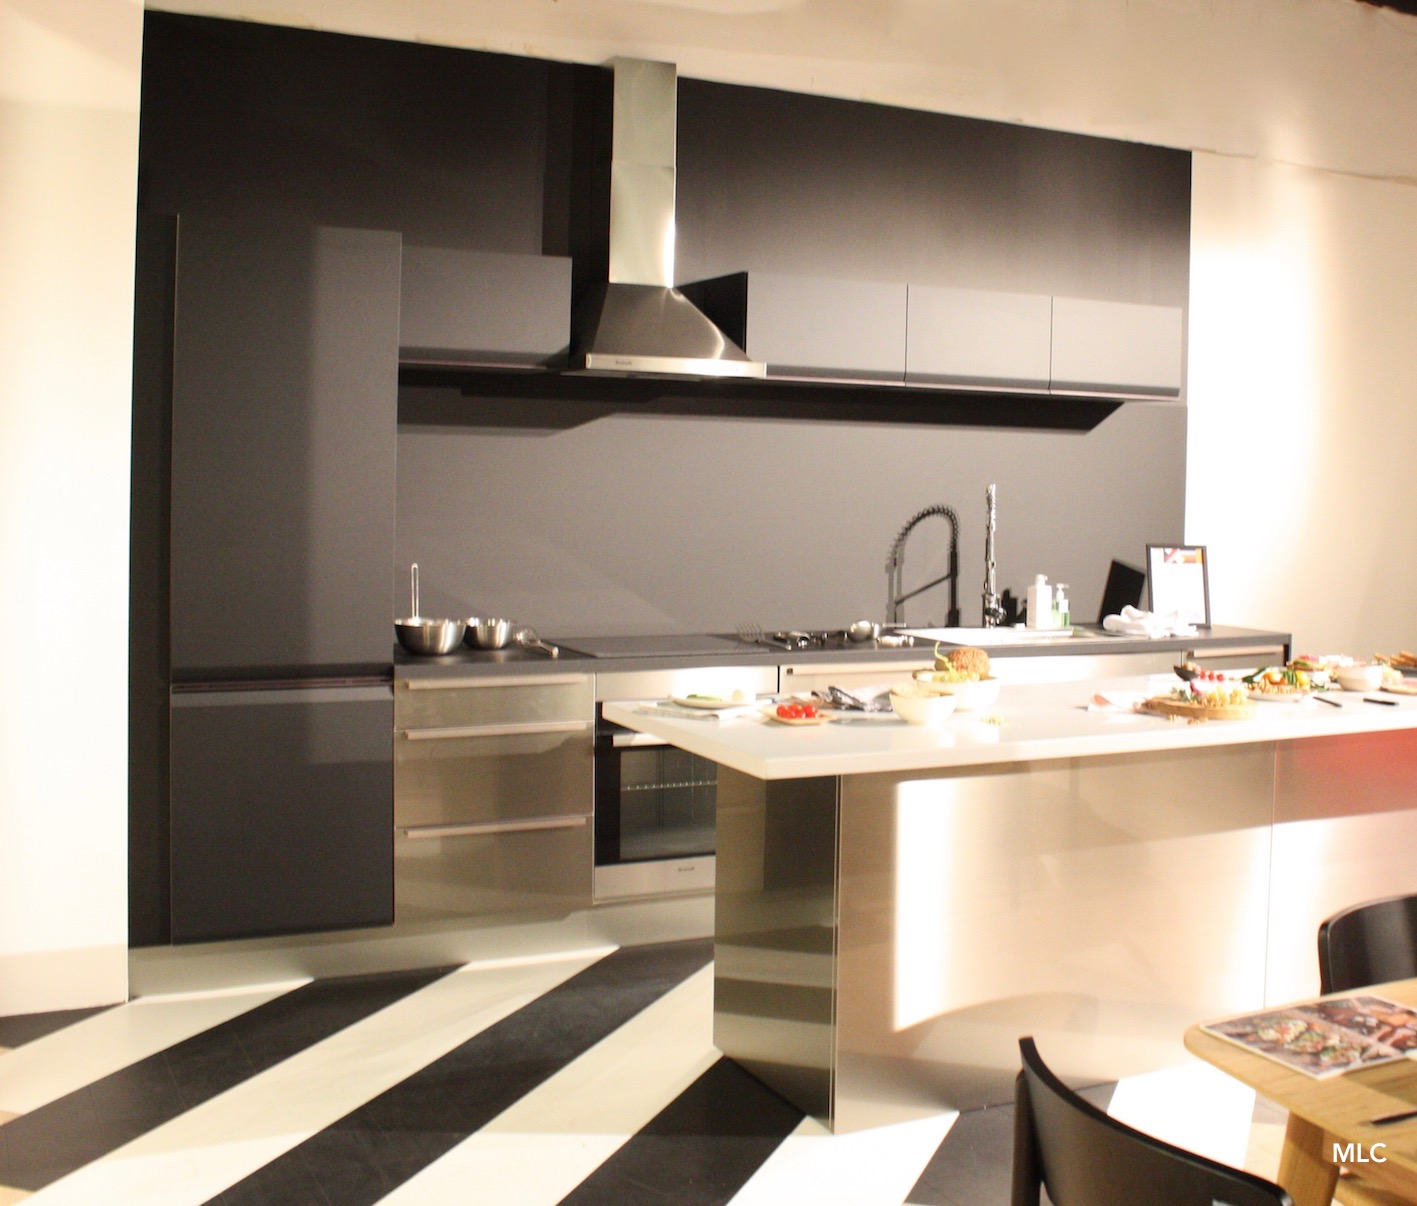 une cuisine noire lumineuse le blog d co de mlc. Black Bedroom Furniture Sets. Home Design Ideas